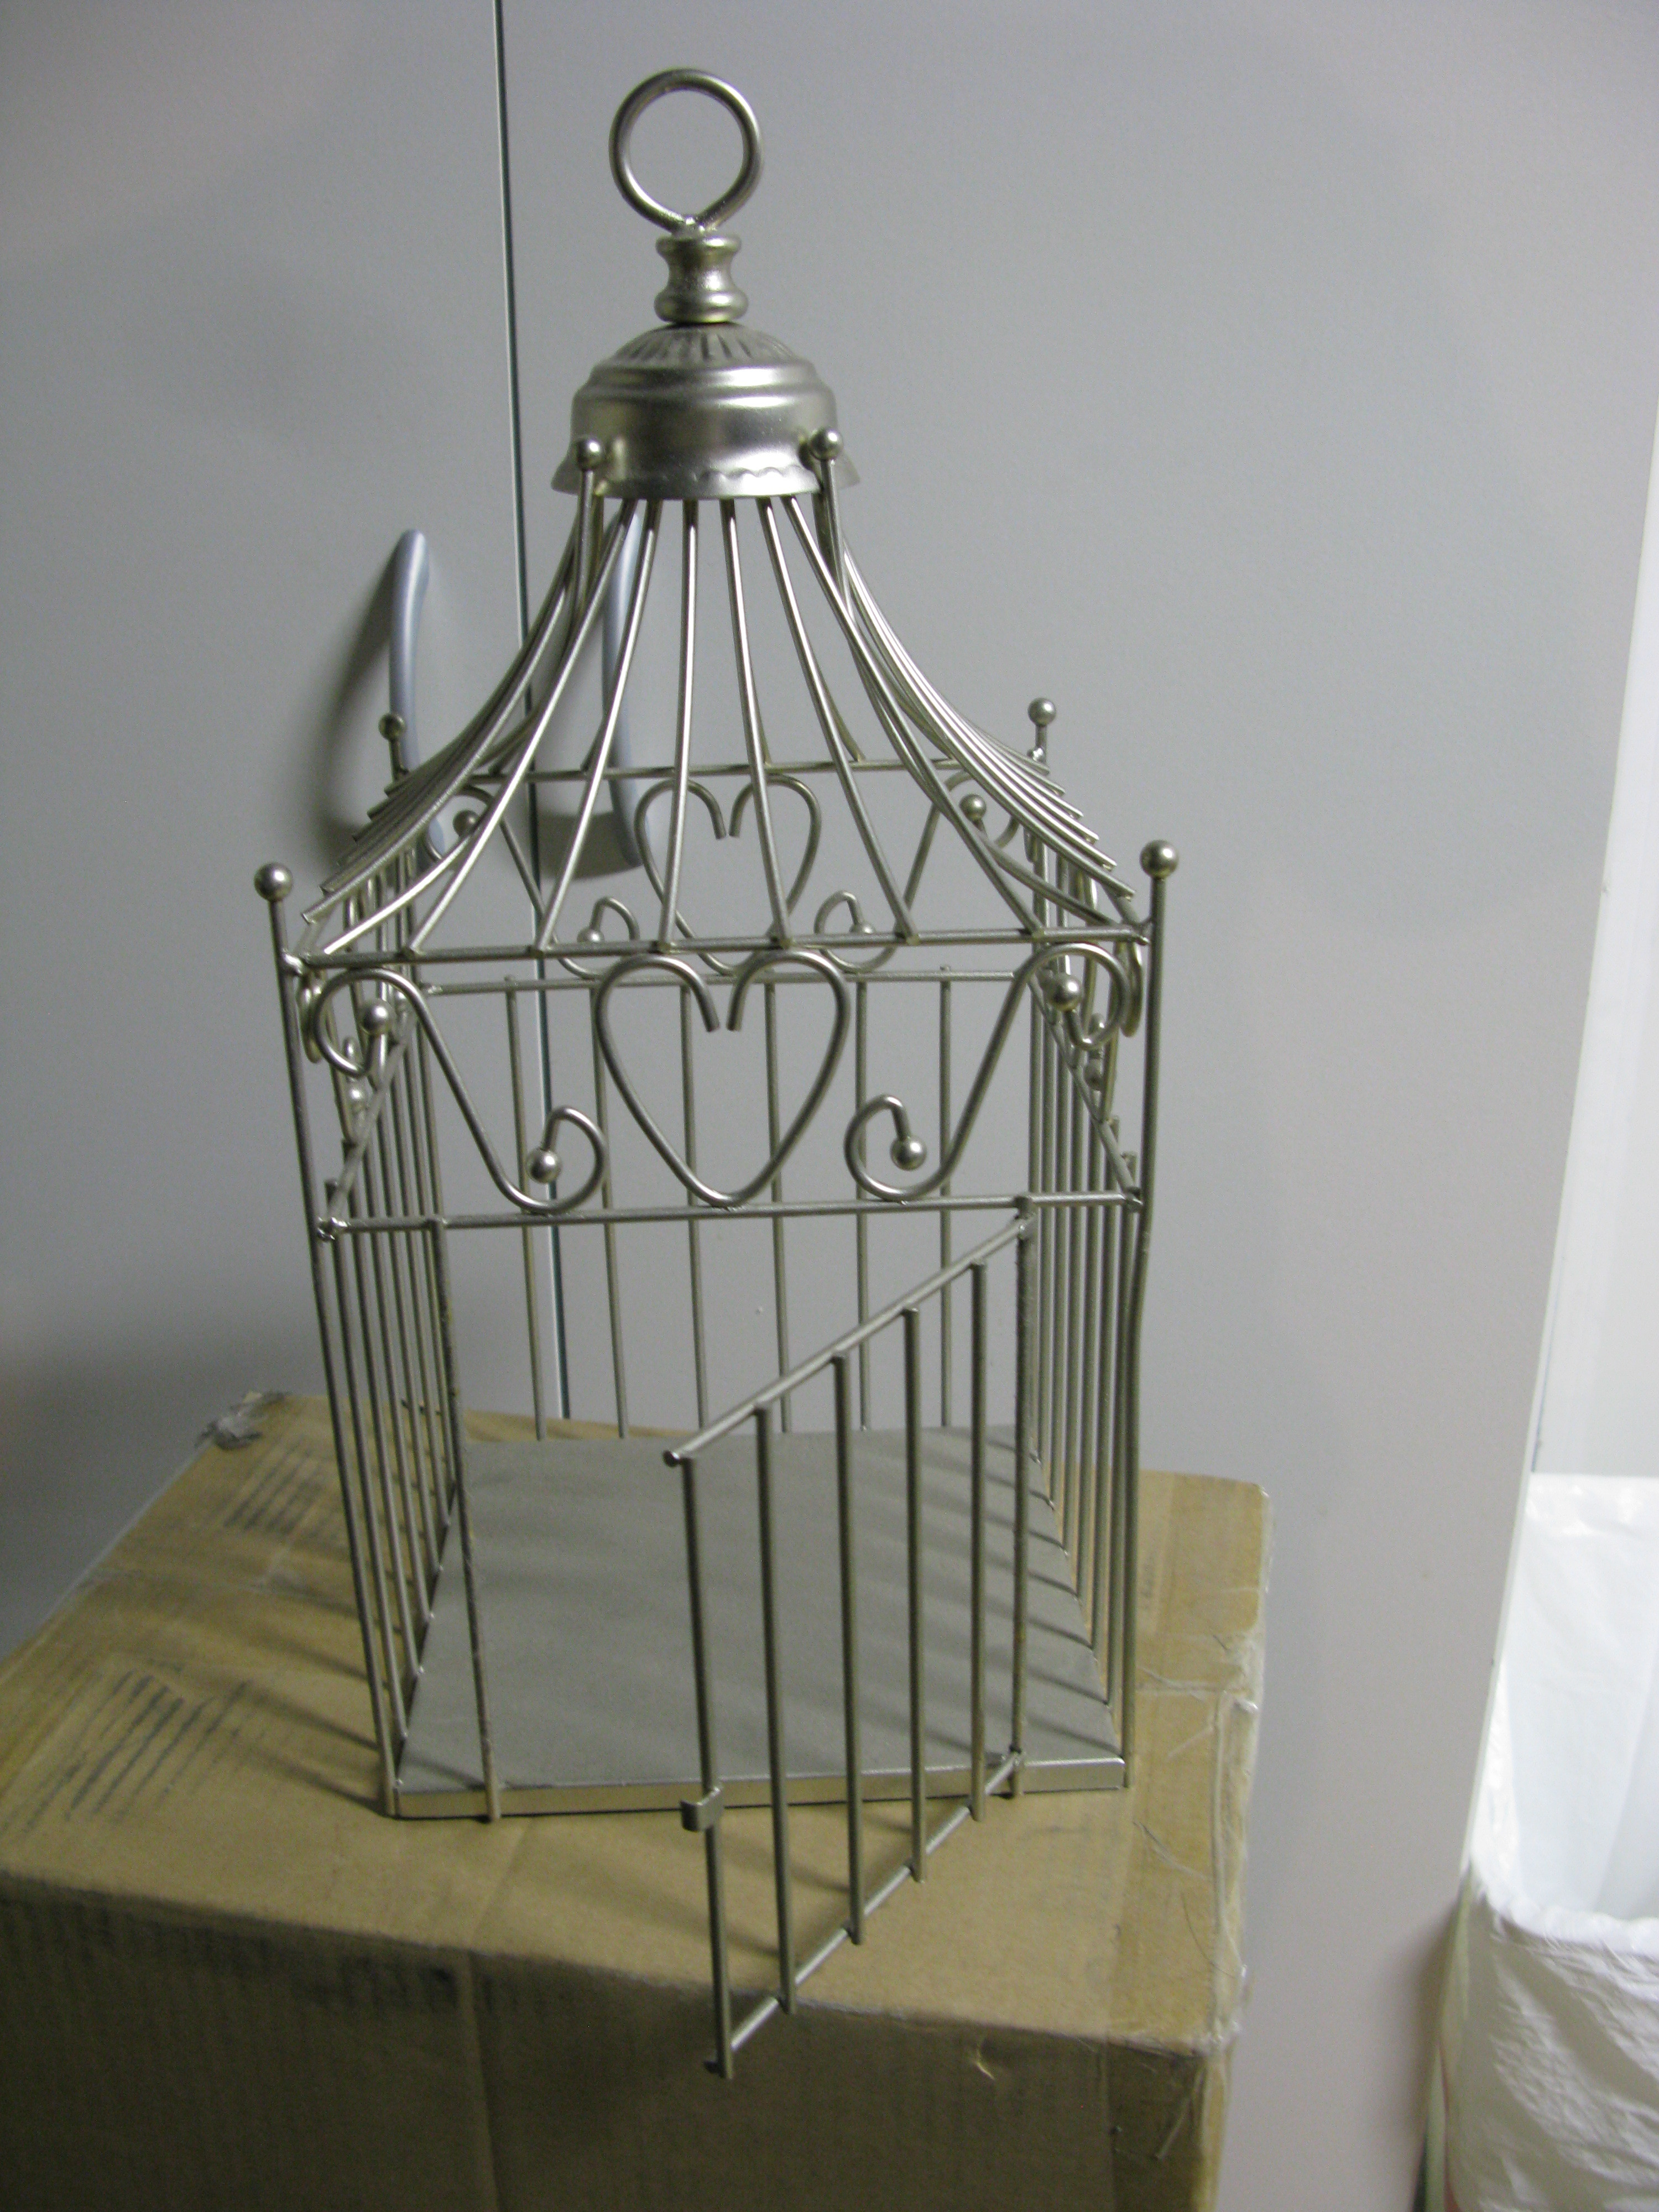 Flowers & Decor, Decor, silver, Cage, Bird, Card, Holder